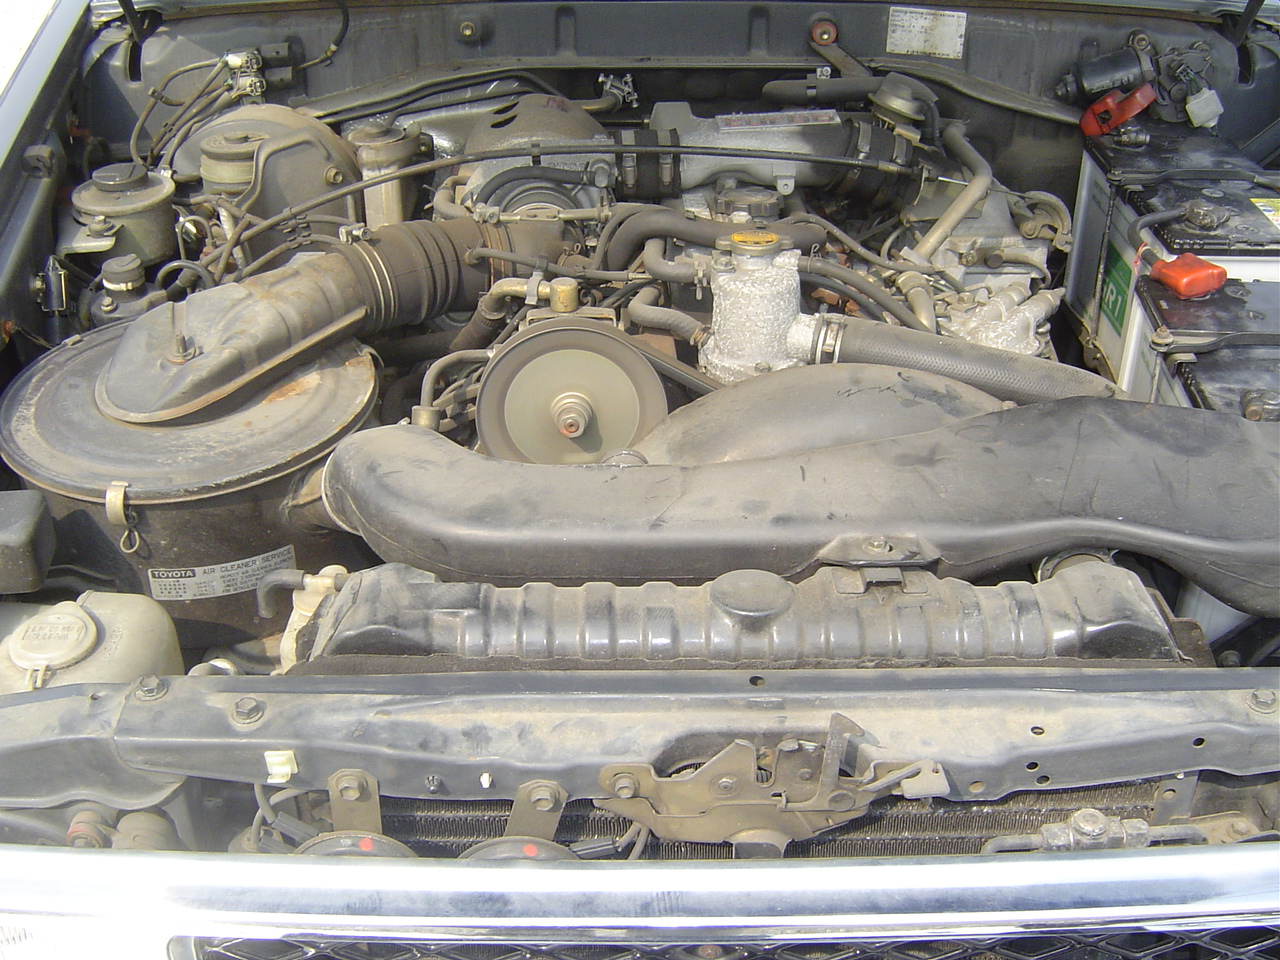 1989 Toyota Landcruiser BJ74 4WD engine